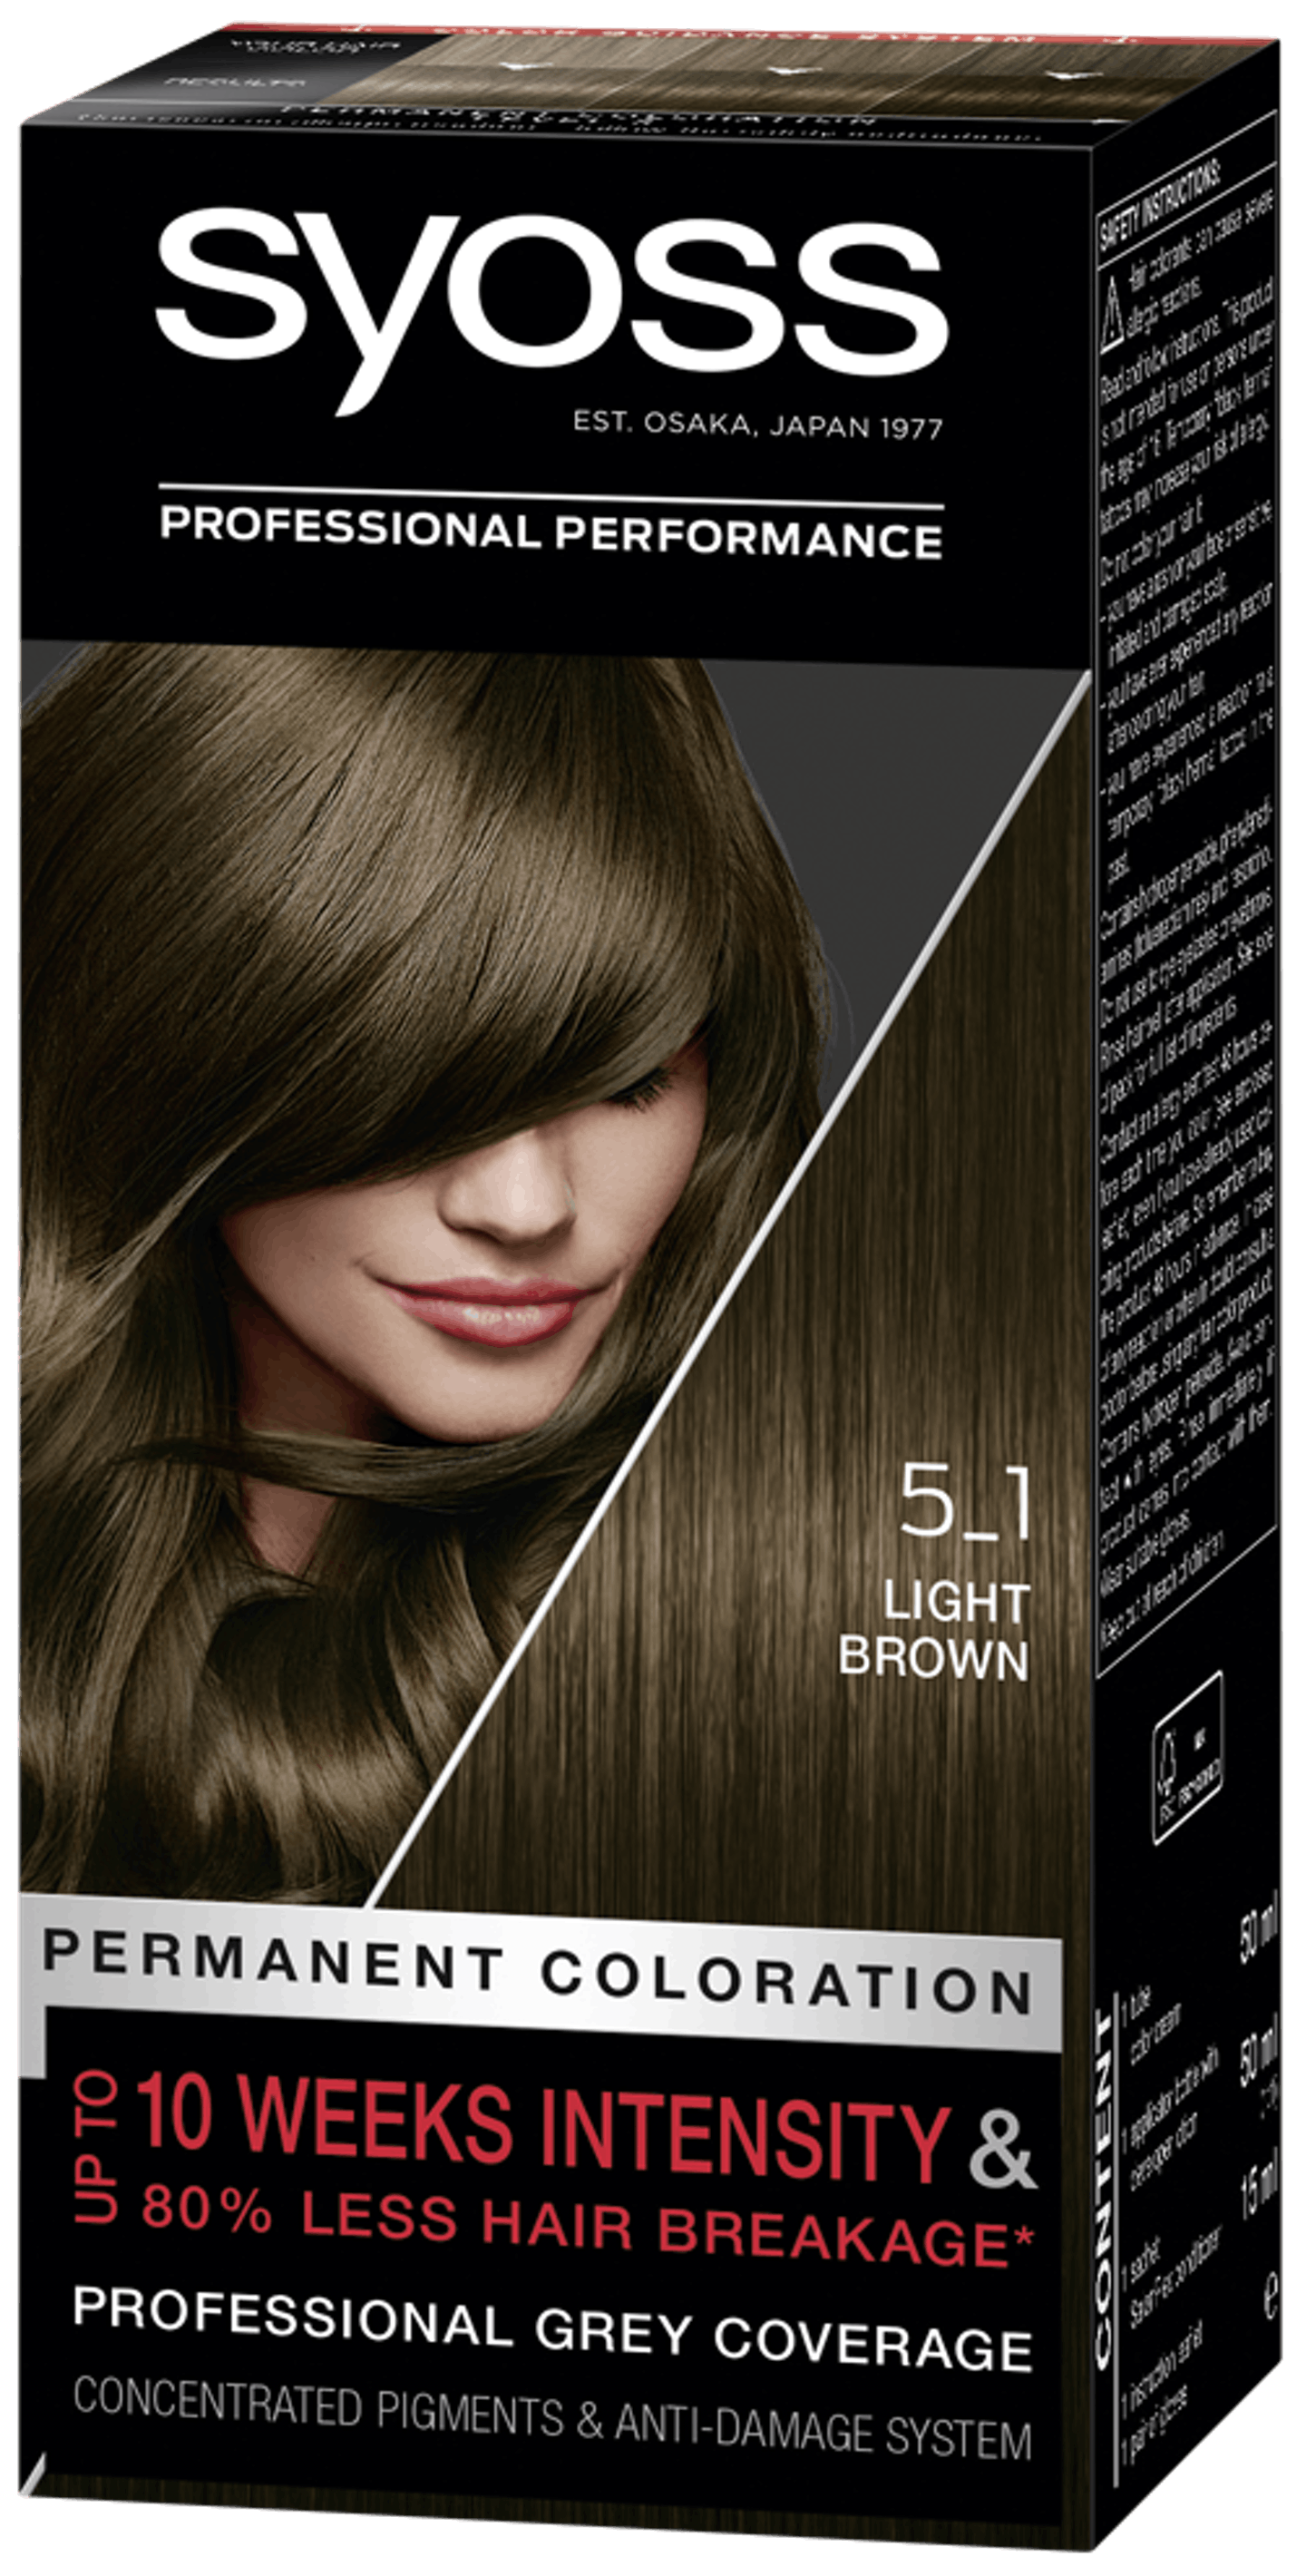 Syoss Permanent Coloration 5_1 Light Brown